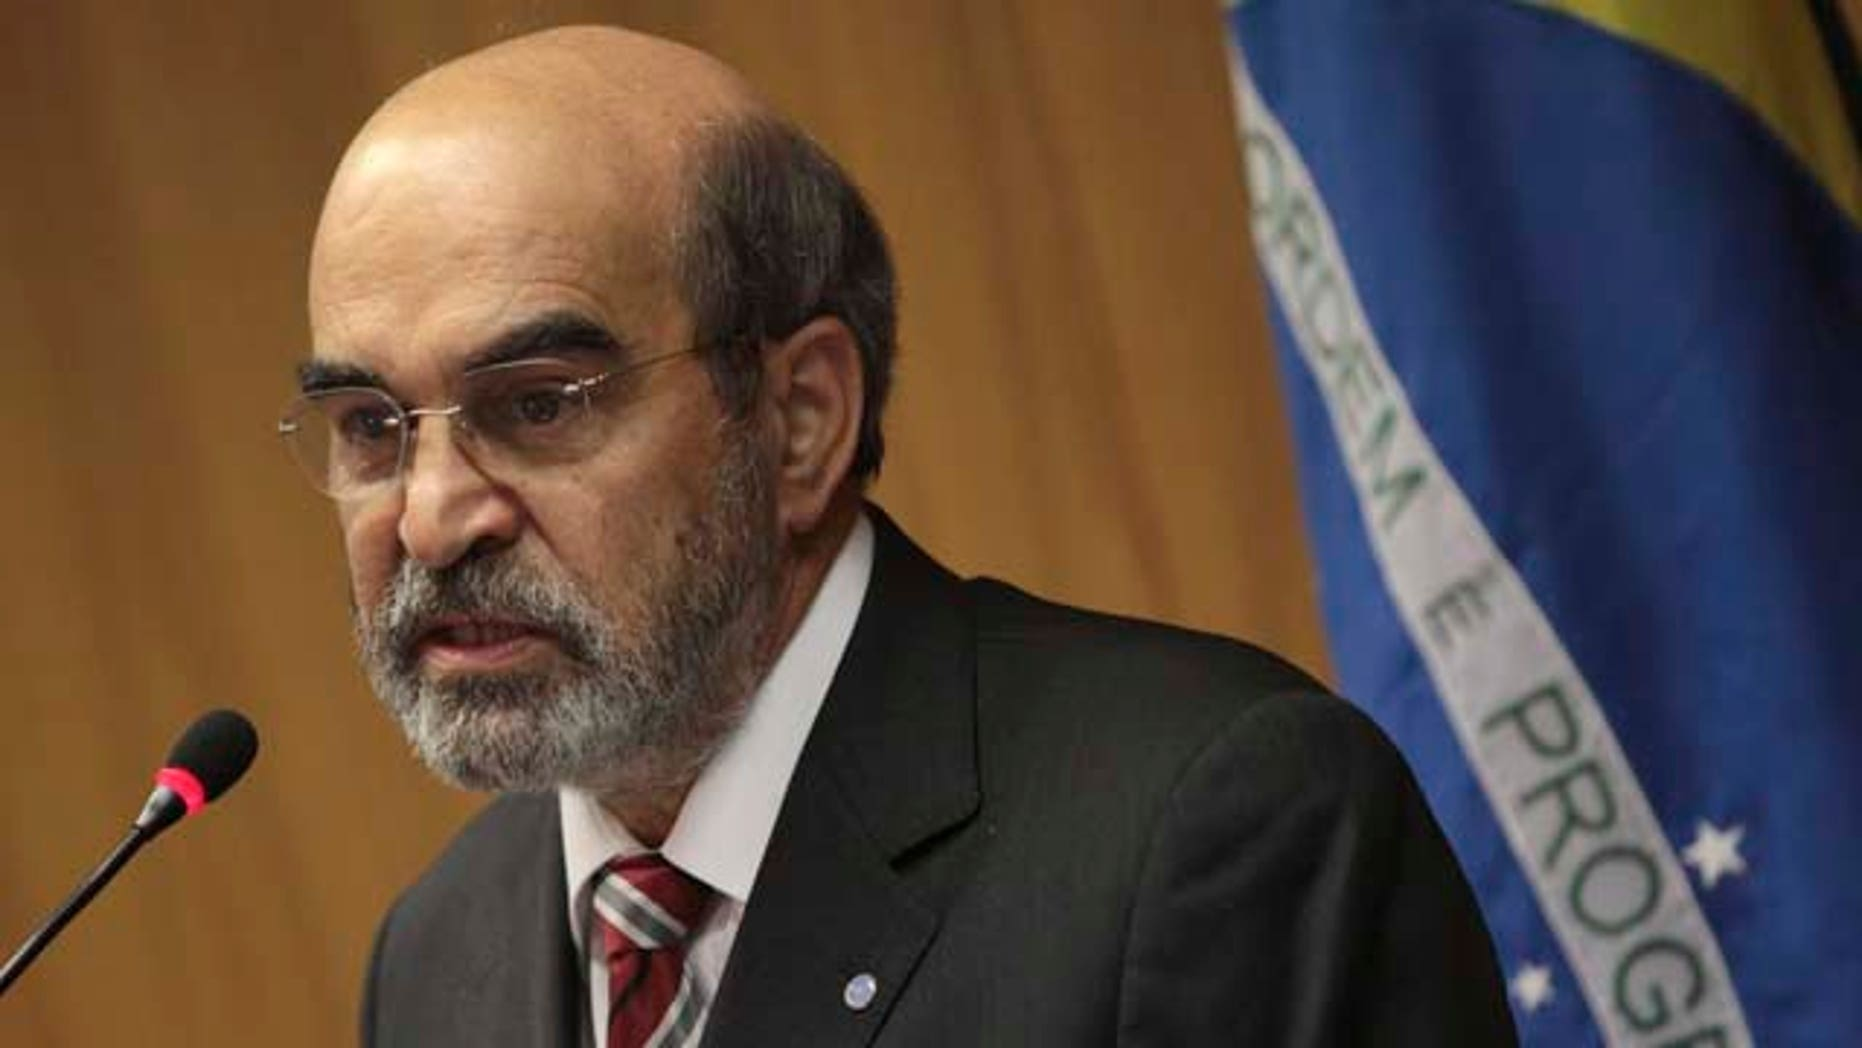 """In this picture taken Aug. 3, 2011, Jose Graziano da Silva, the new Director-General of the UN Food and Agriculture Organization (FAO), speaks during a news conference at Itamaraty palace in Brasilia, Brazil. Graziano, a former Brazilian food security minister, is one of the creators of the nation's """"Zero Hunger"""" social programs which includes """"Bolsa Familia"""" or """"Family Grant"""", the biggest program that gives money directly to poor households. That same idea may now get a global tryout as world food prices spike, economies everywhere sputter and a horrific famine desolates East Africa. (AP Photo/Eraldo Peres)"""